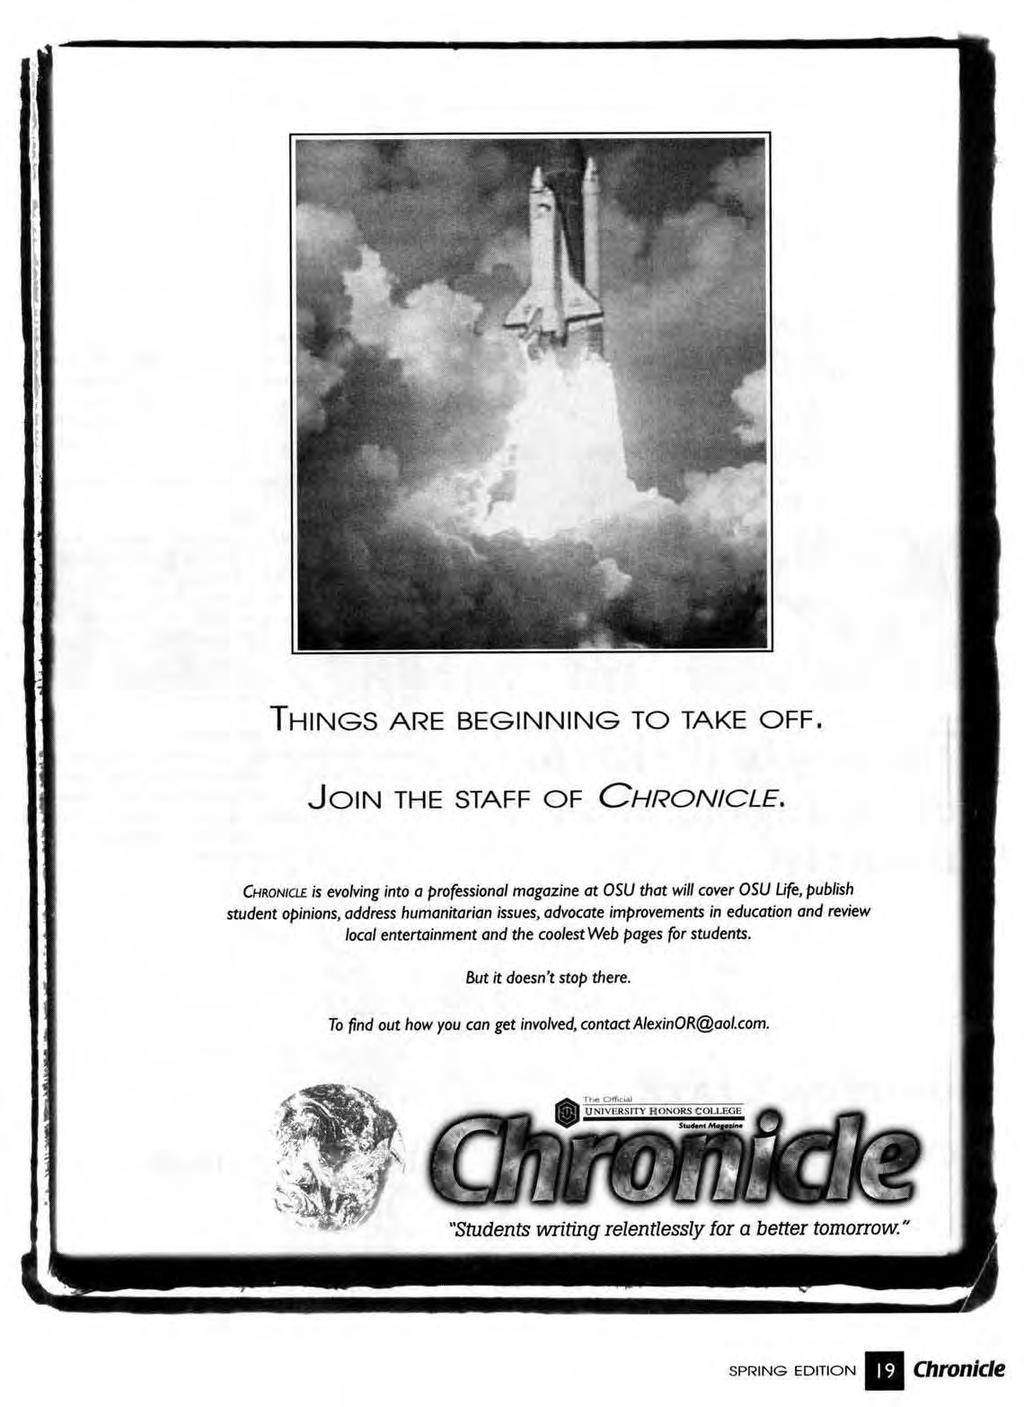 THINGS ARE BEGINNING TO TAKE OFF. JOIN THE STAFF OF CHRONICLE. CHRONICLE 5 evolving into a professional magazine at 051.